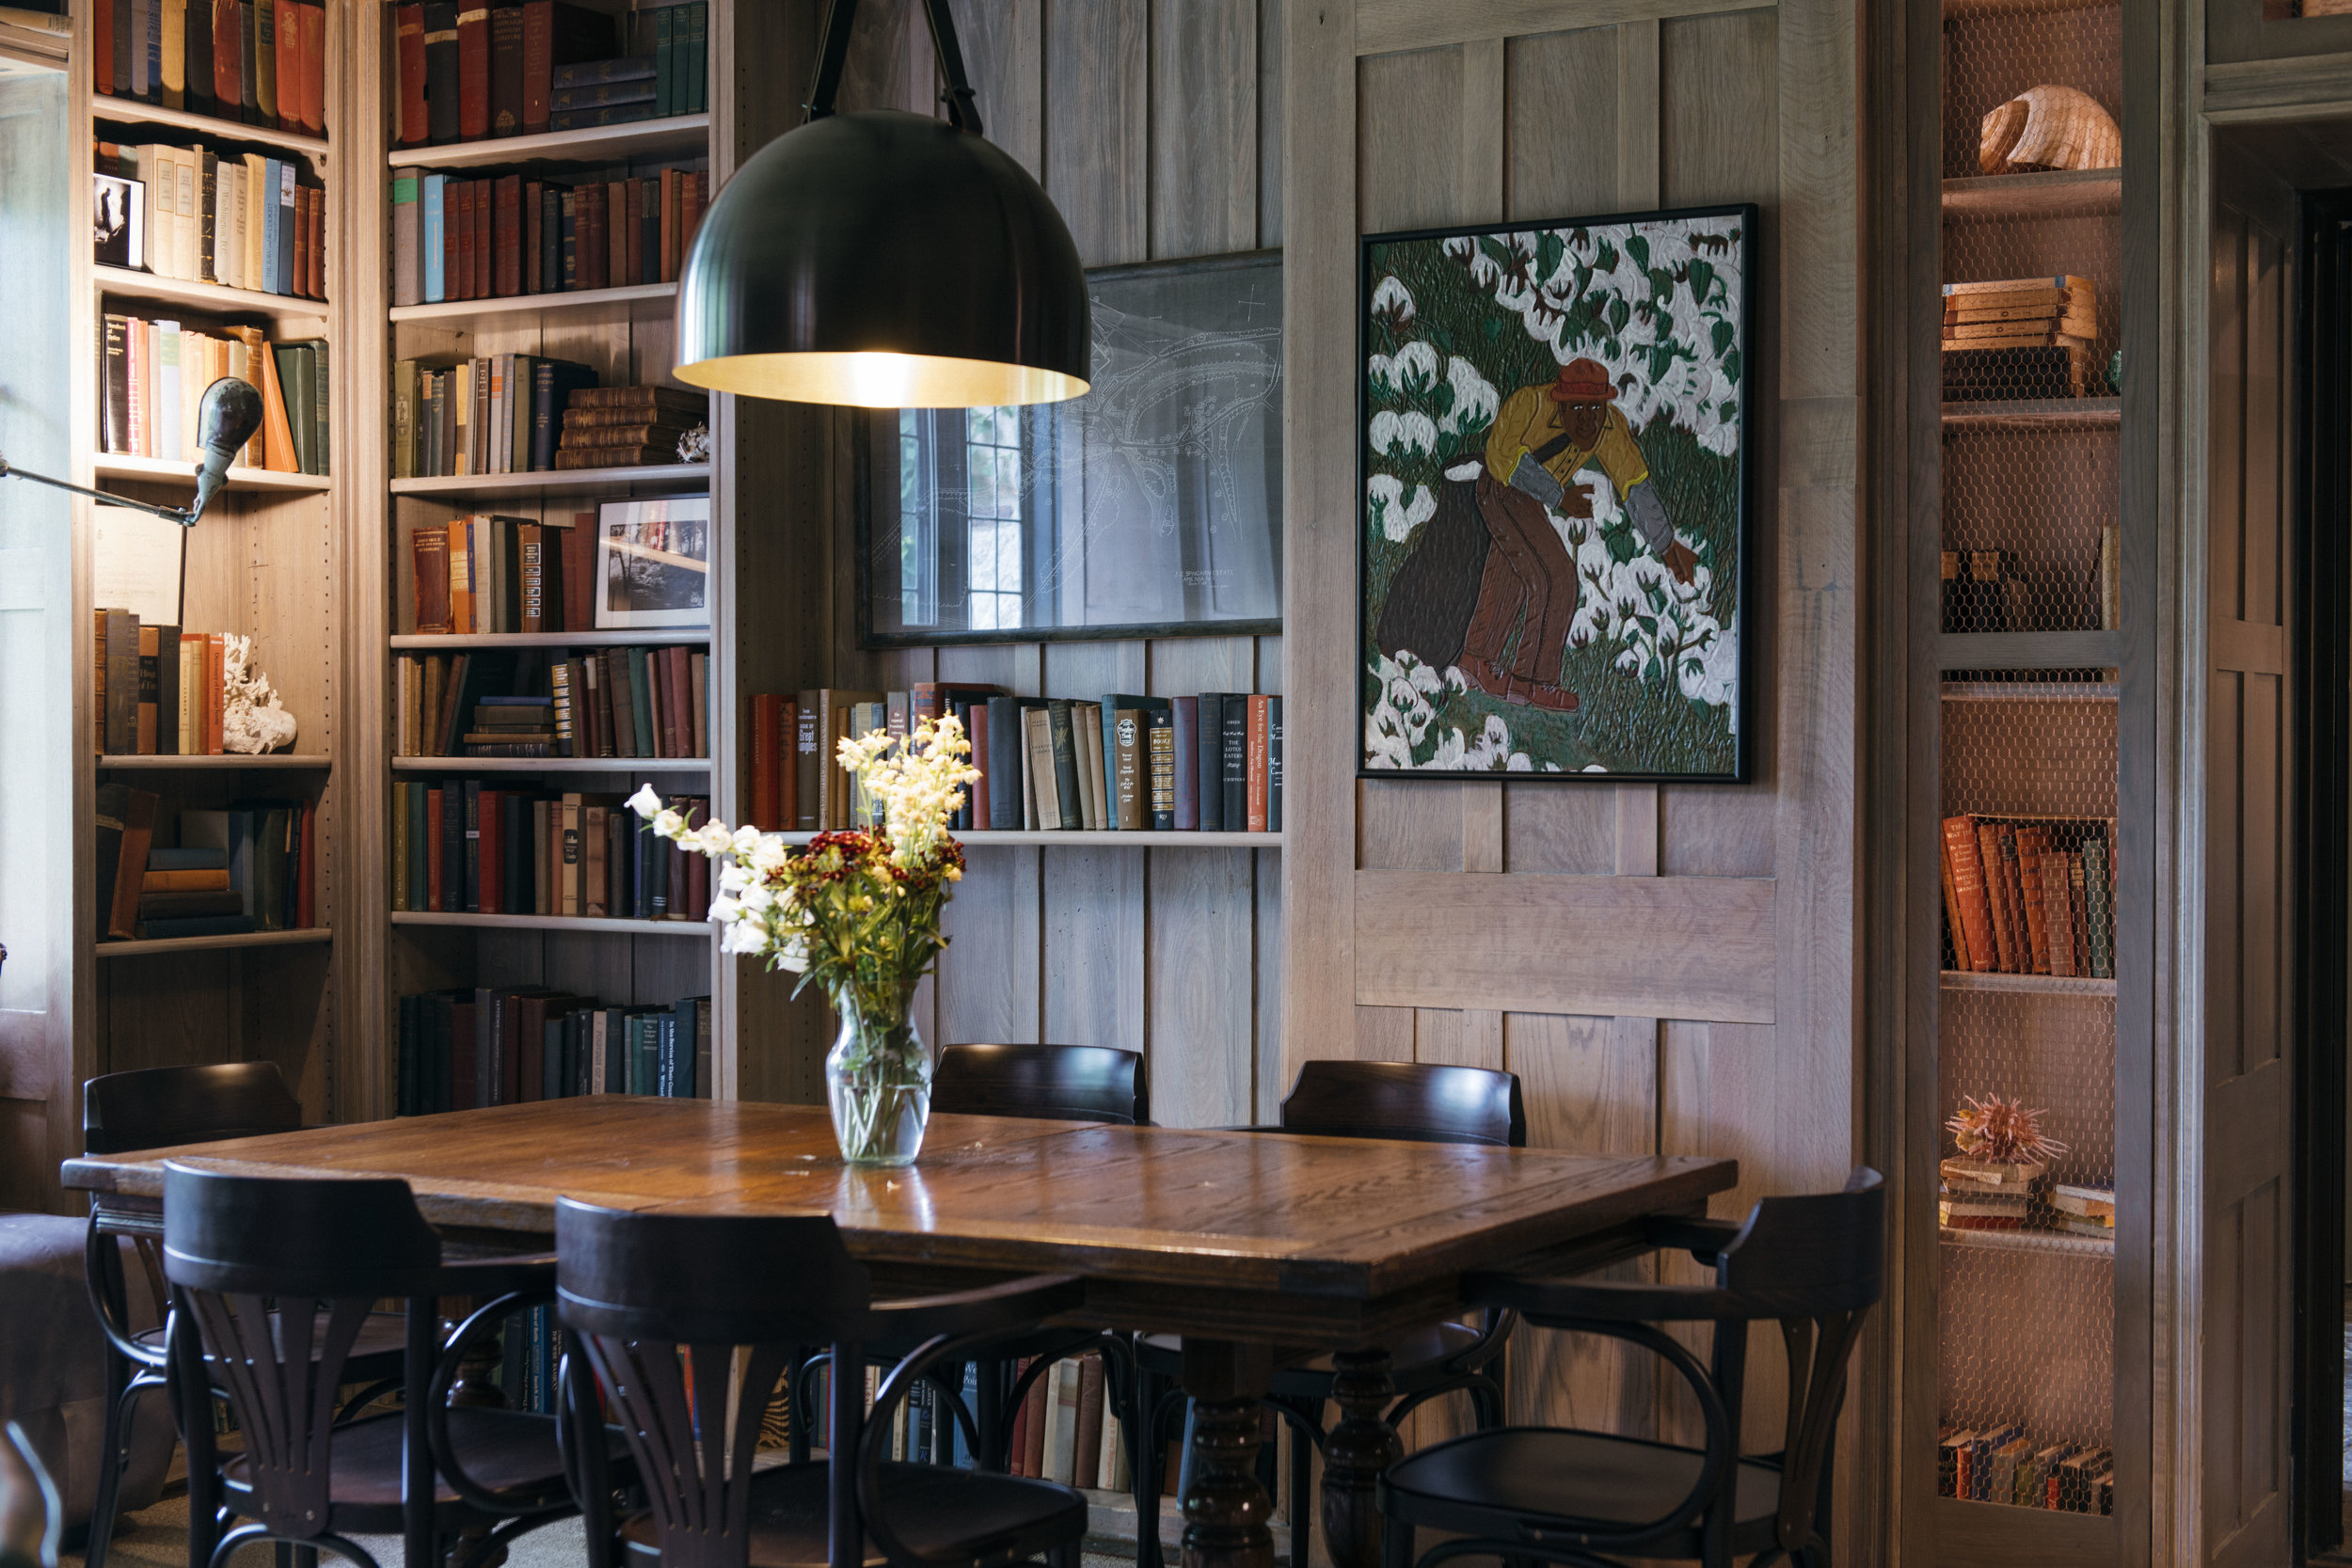 Library at Troutbeck located in Amenia New York